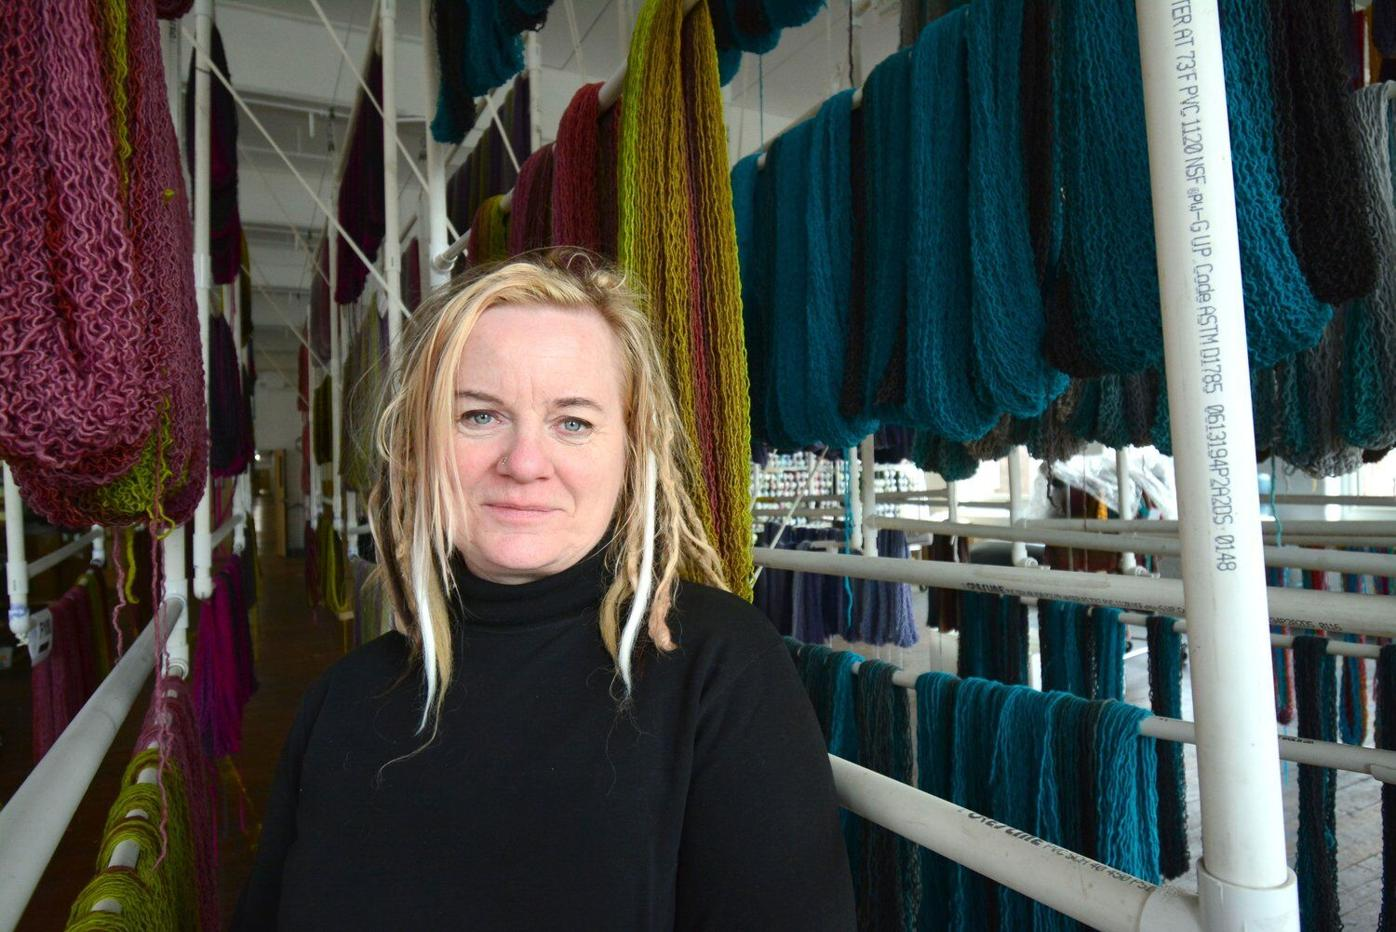 Not finding what she wanted to knit with, Tina Whitmore created it